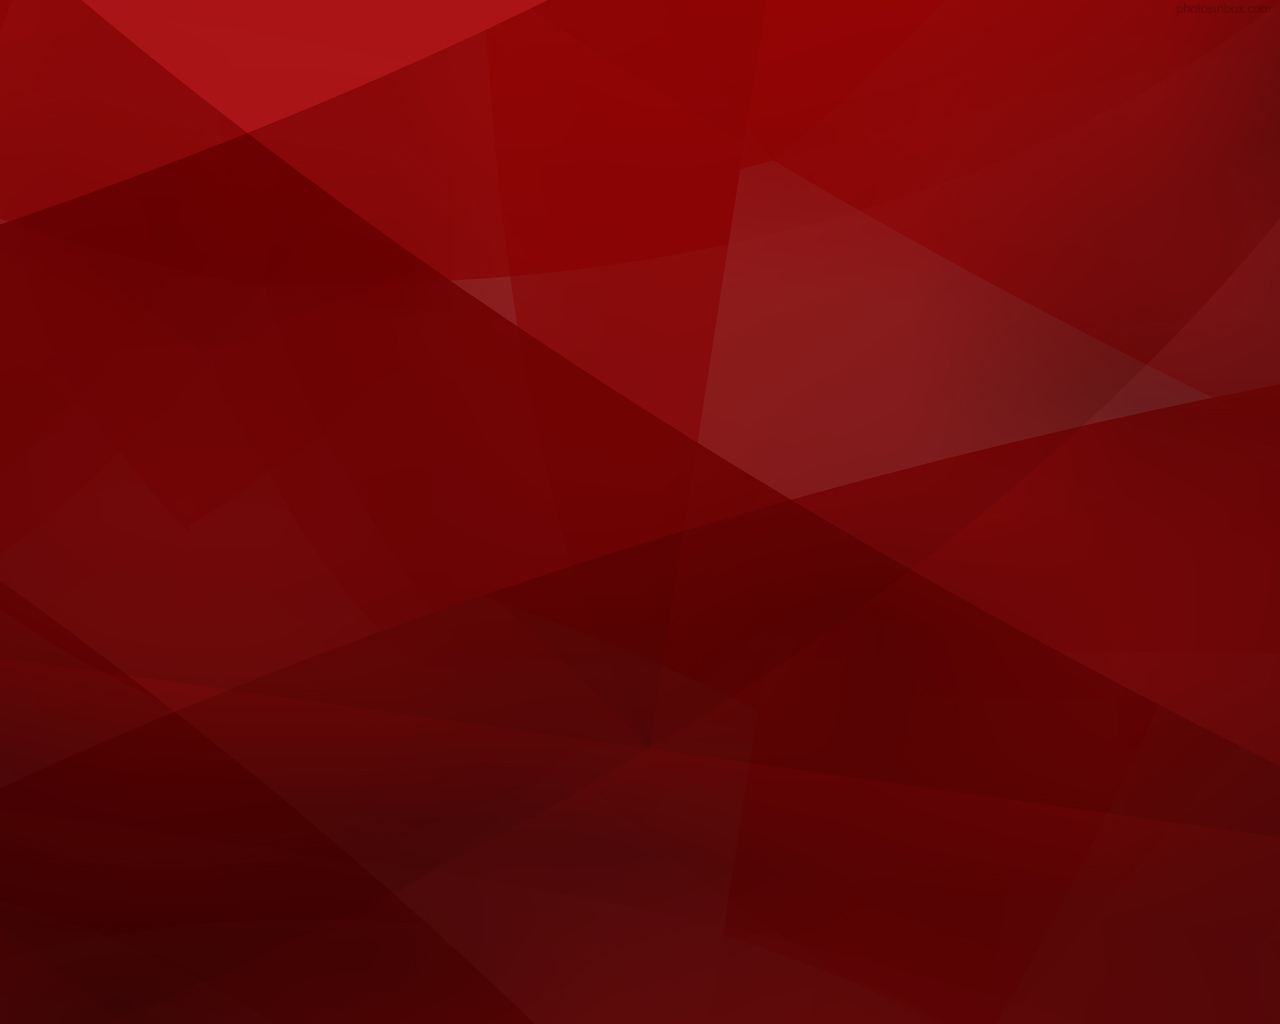 Red abstract background PhotosInBox 1280x1024